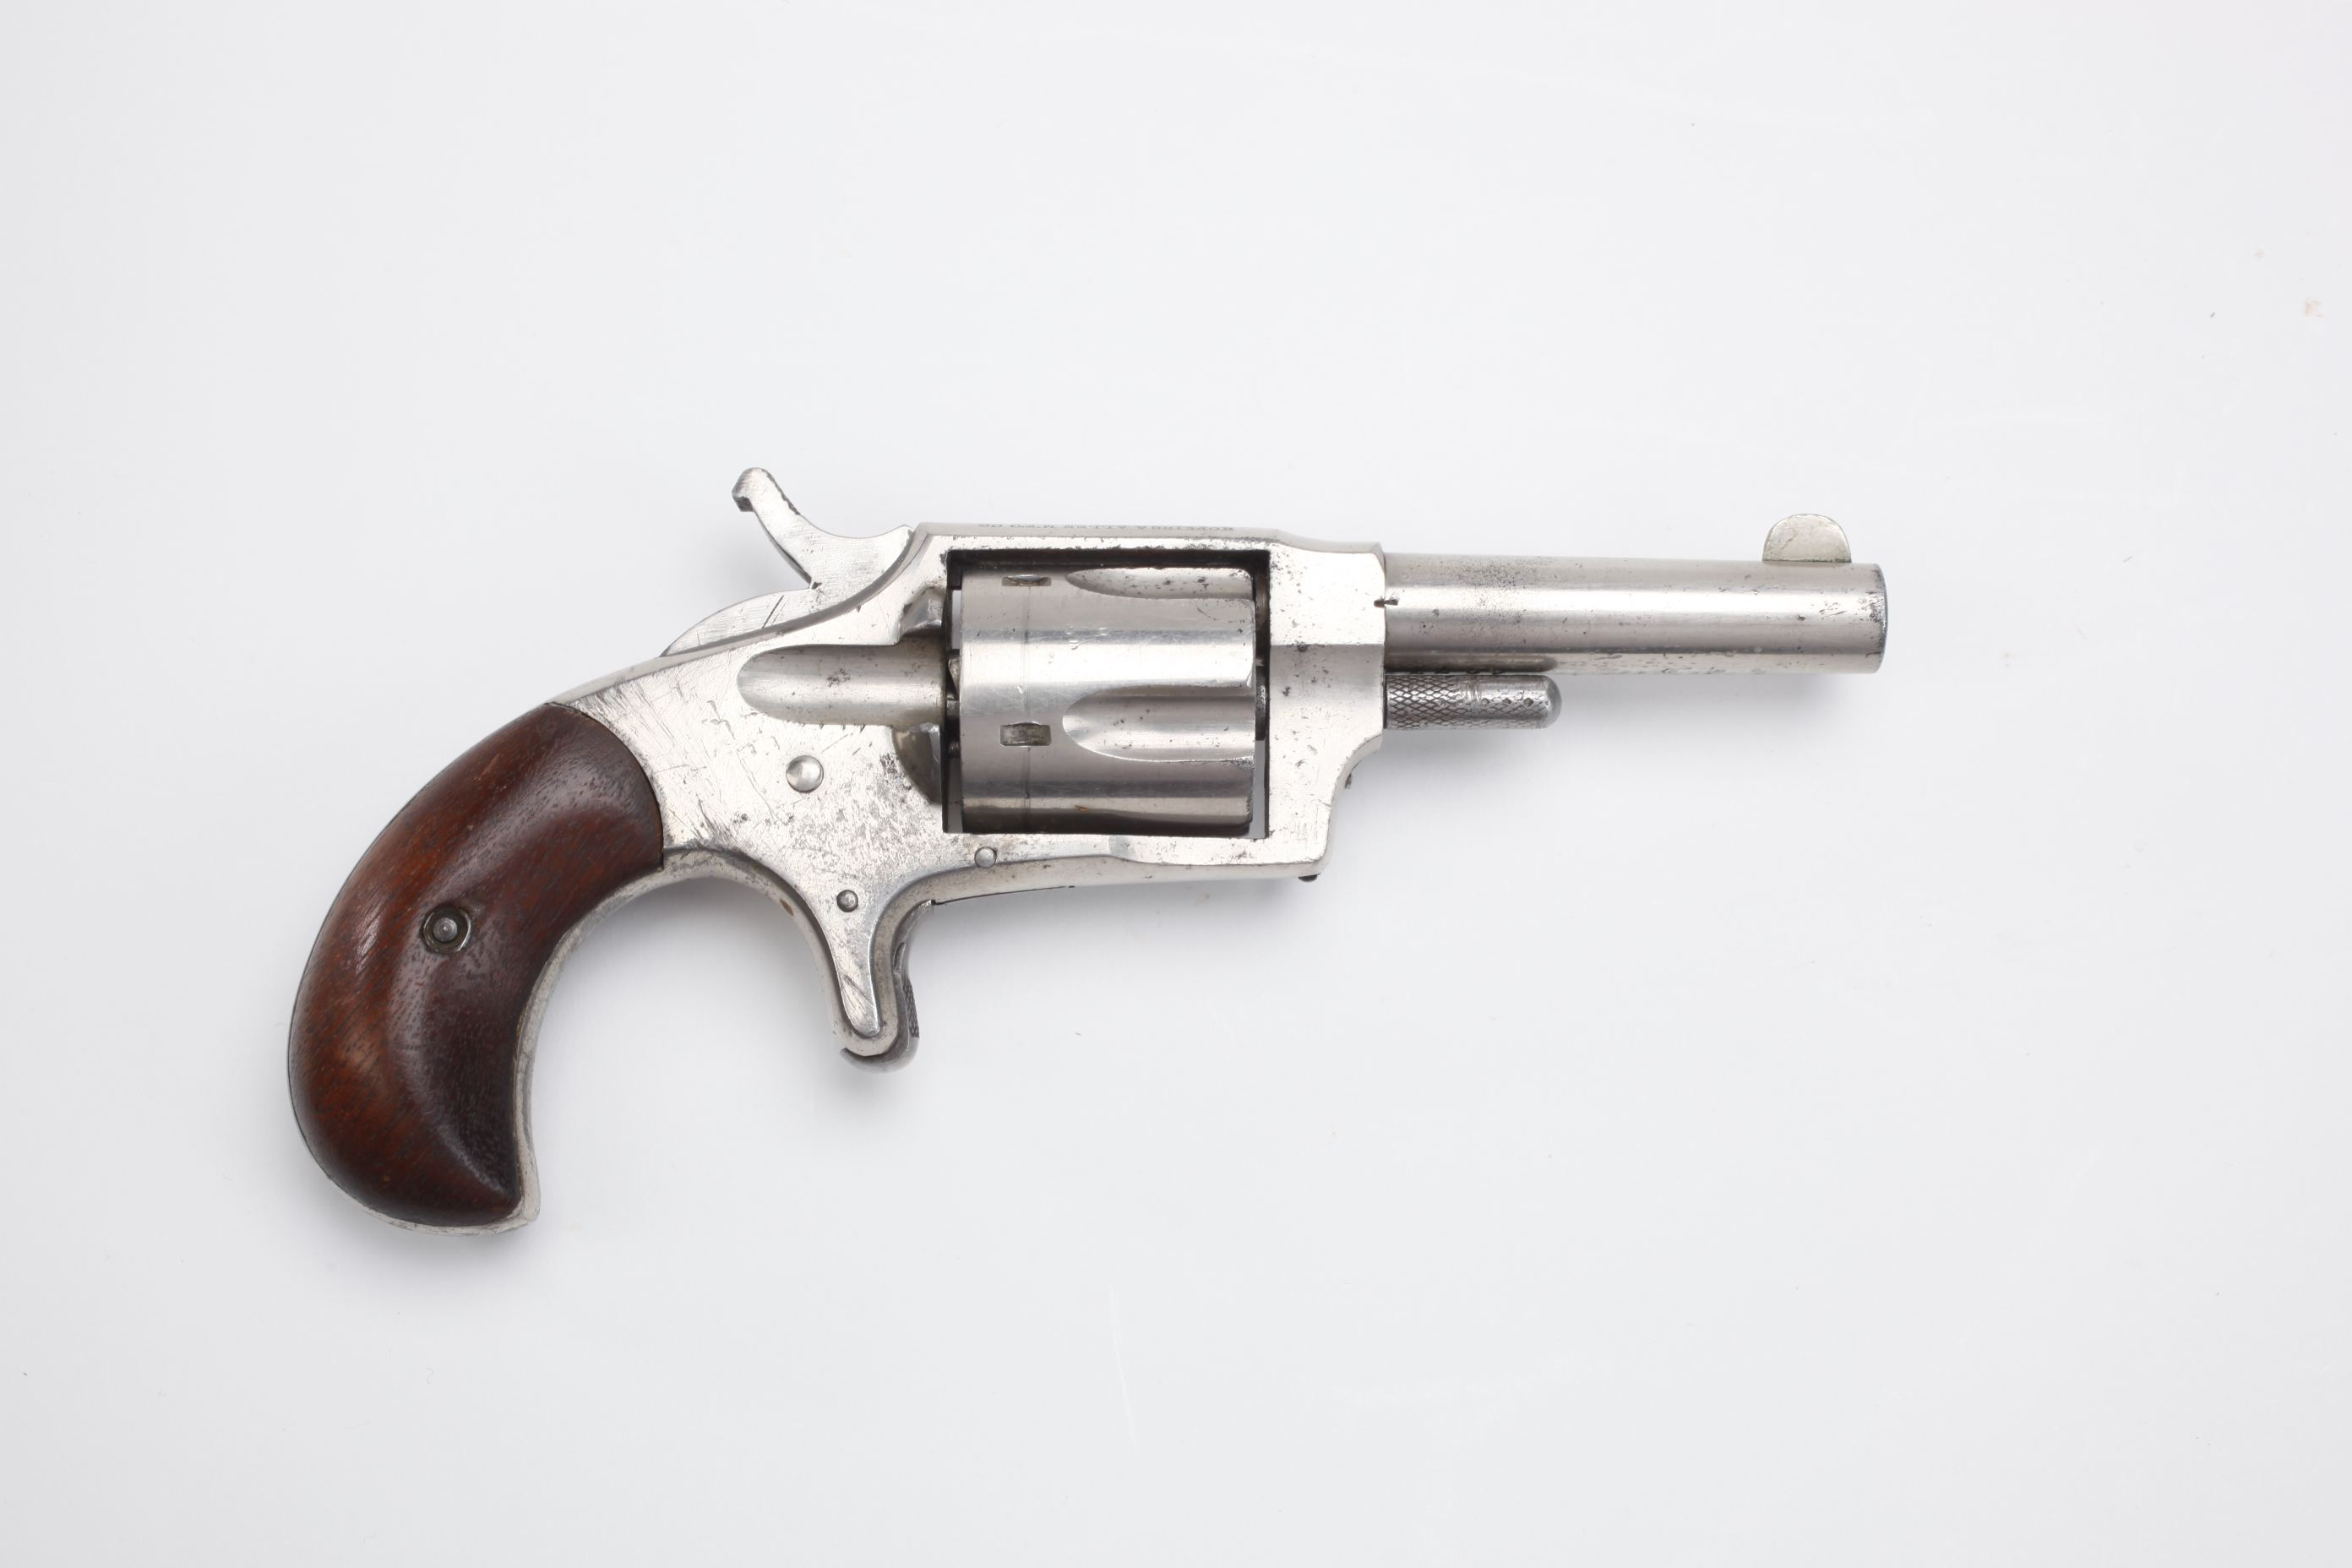 Hopkins & Allen Ranger No 2 revolver